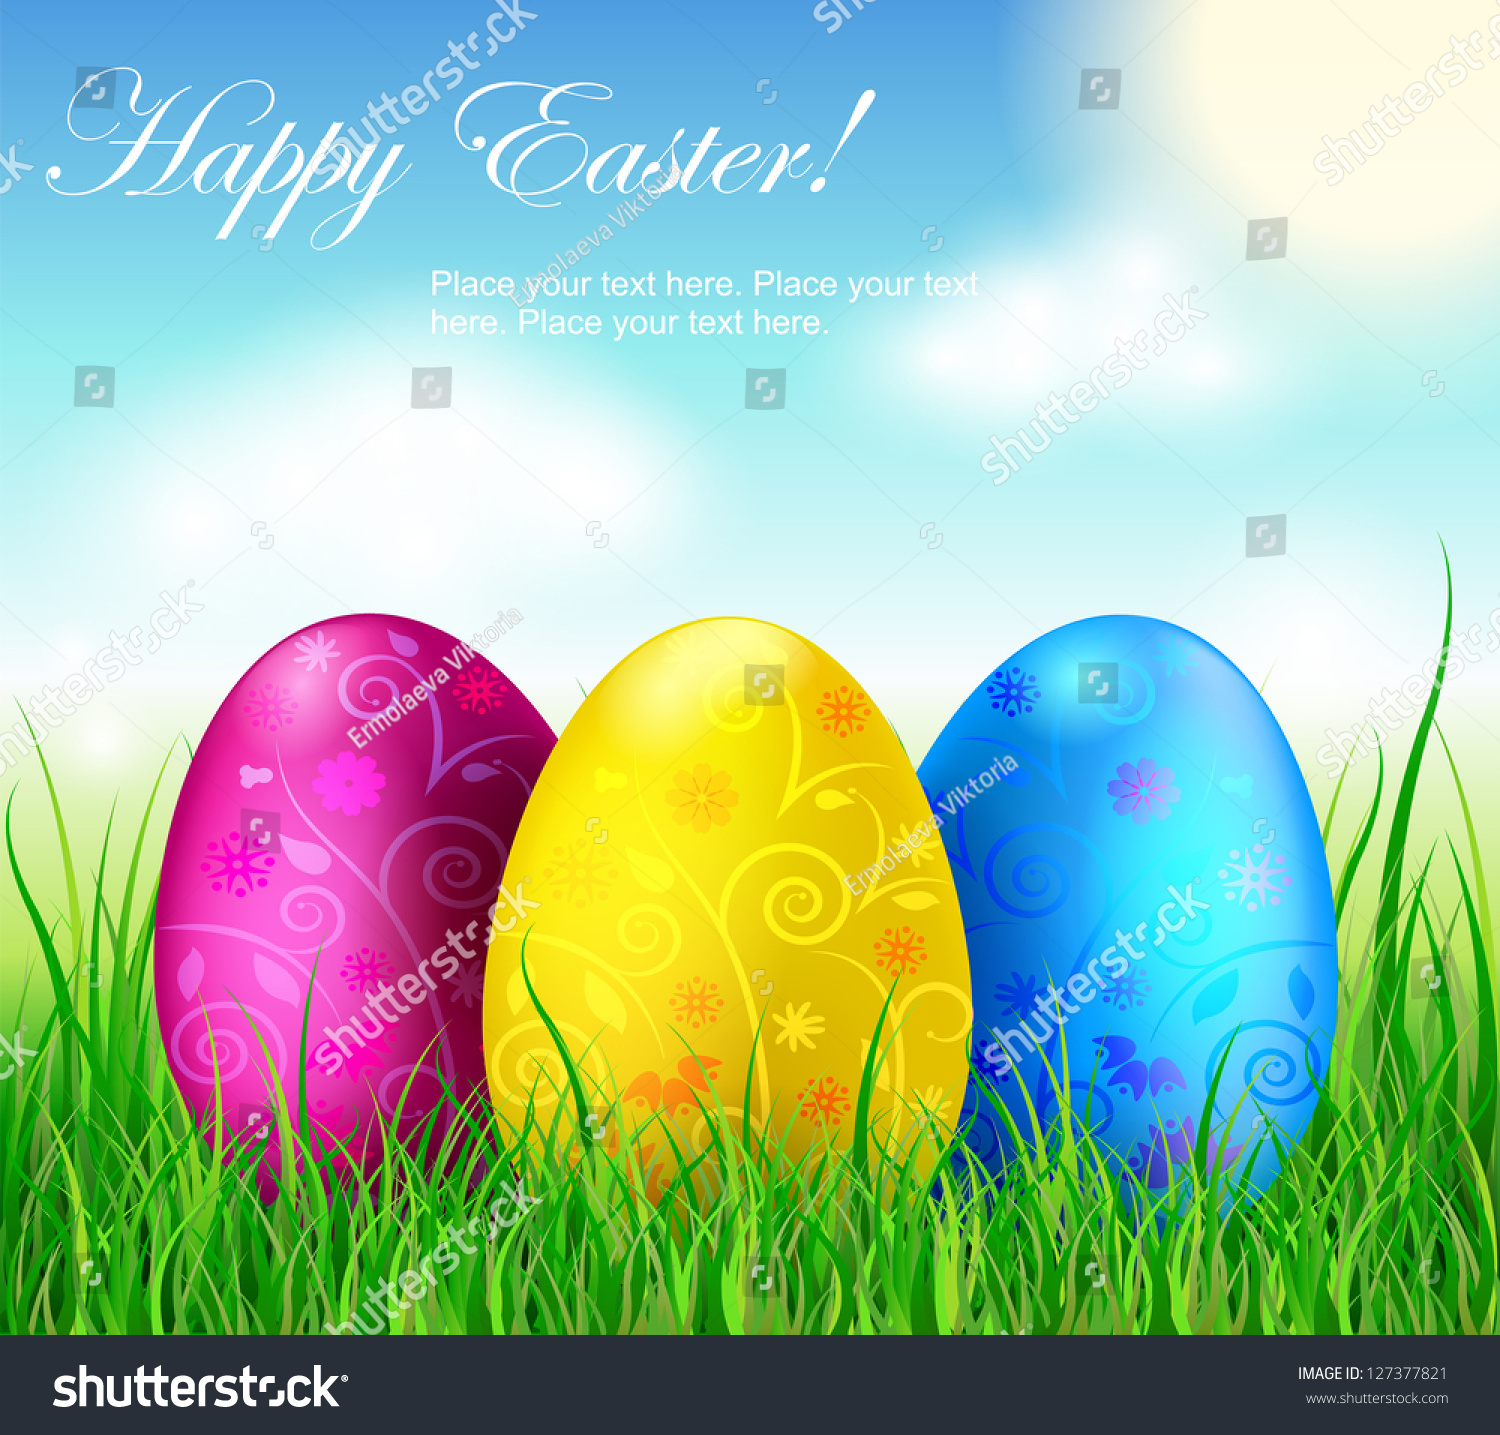 beautiful easter eggs background - photo #29